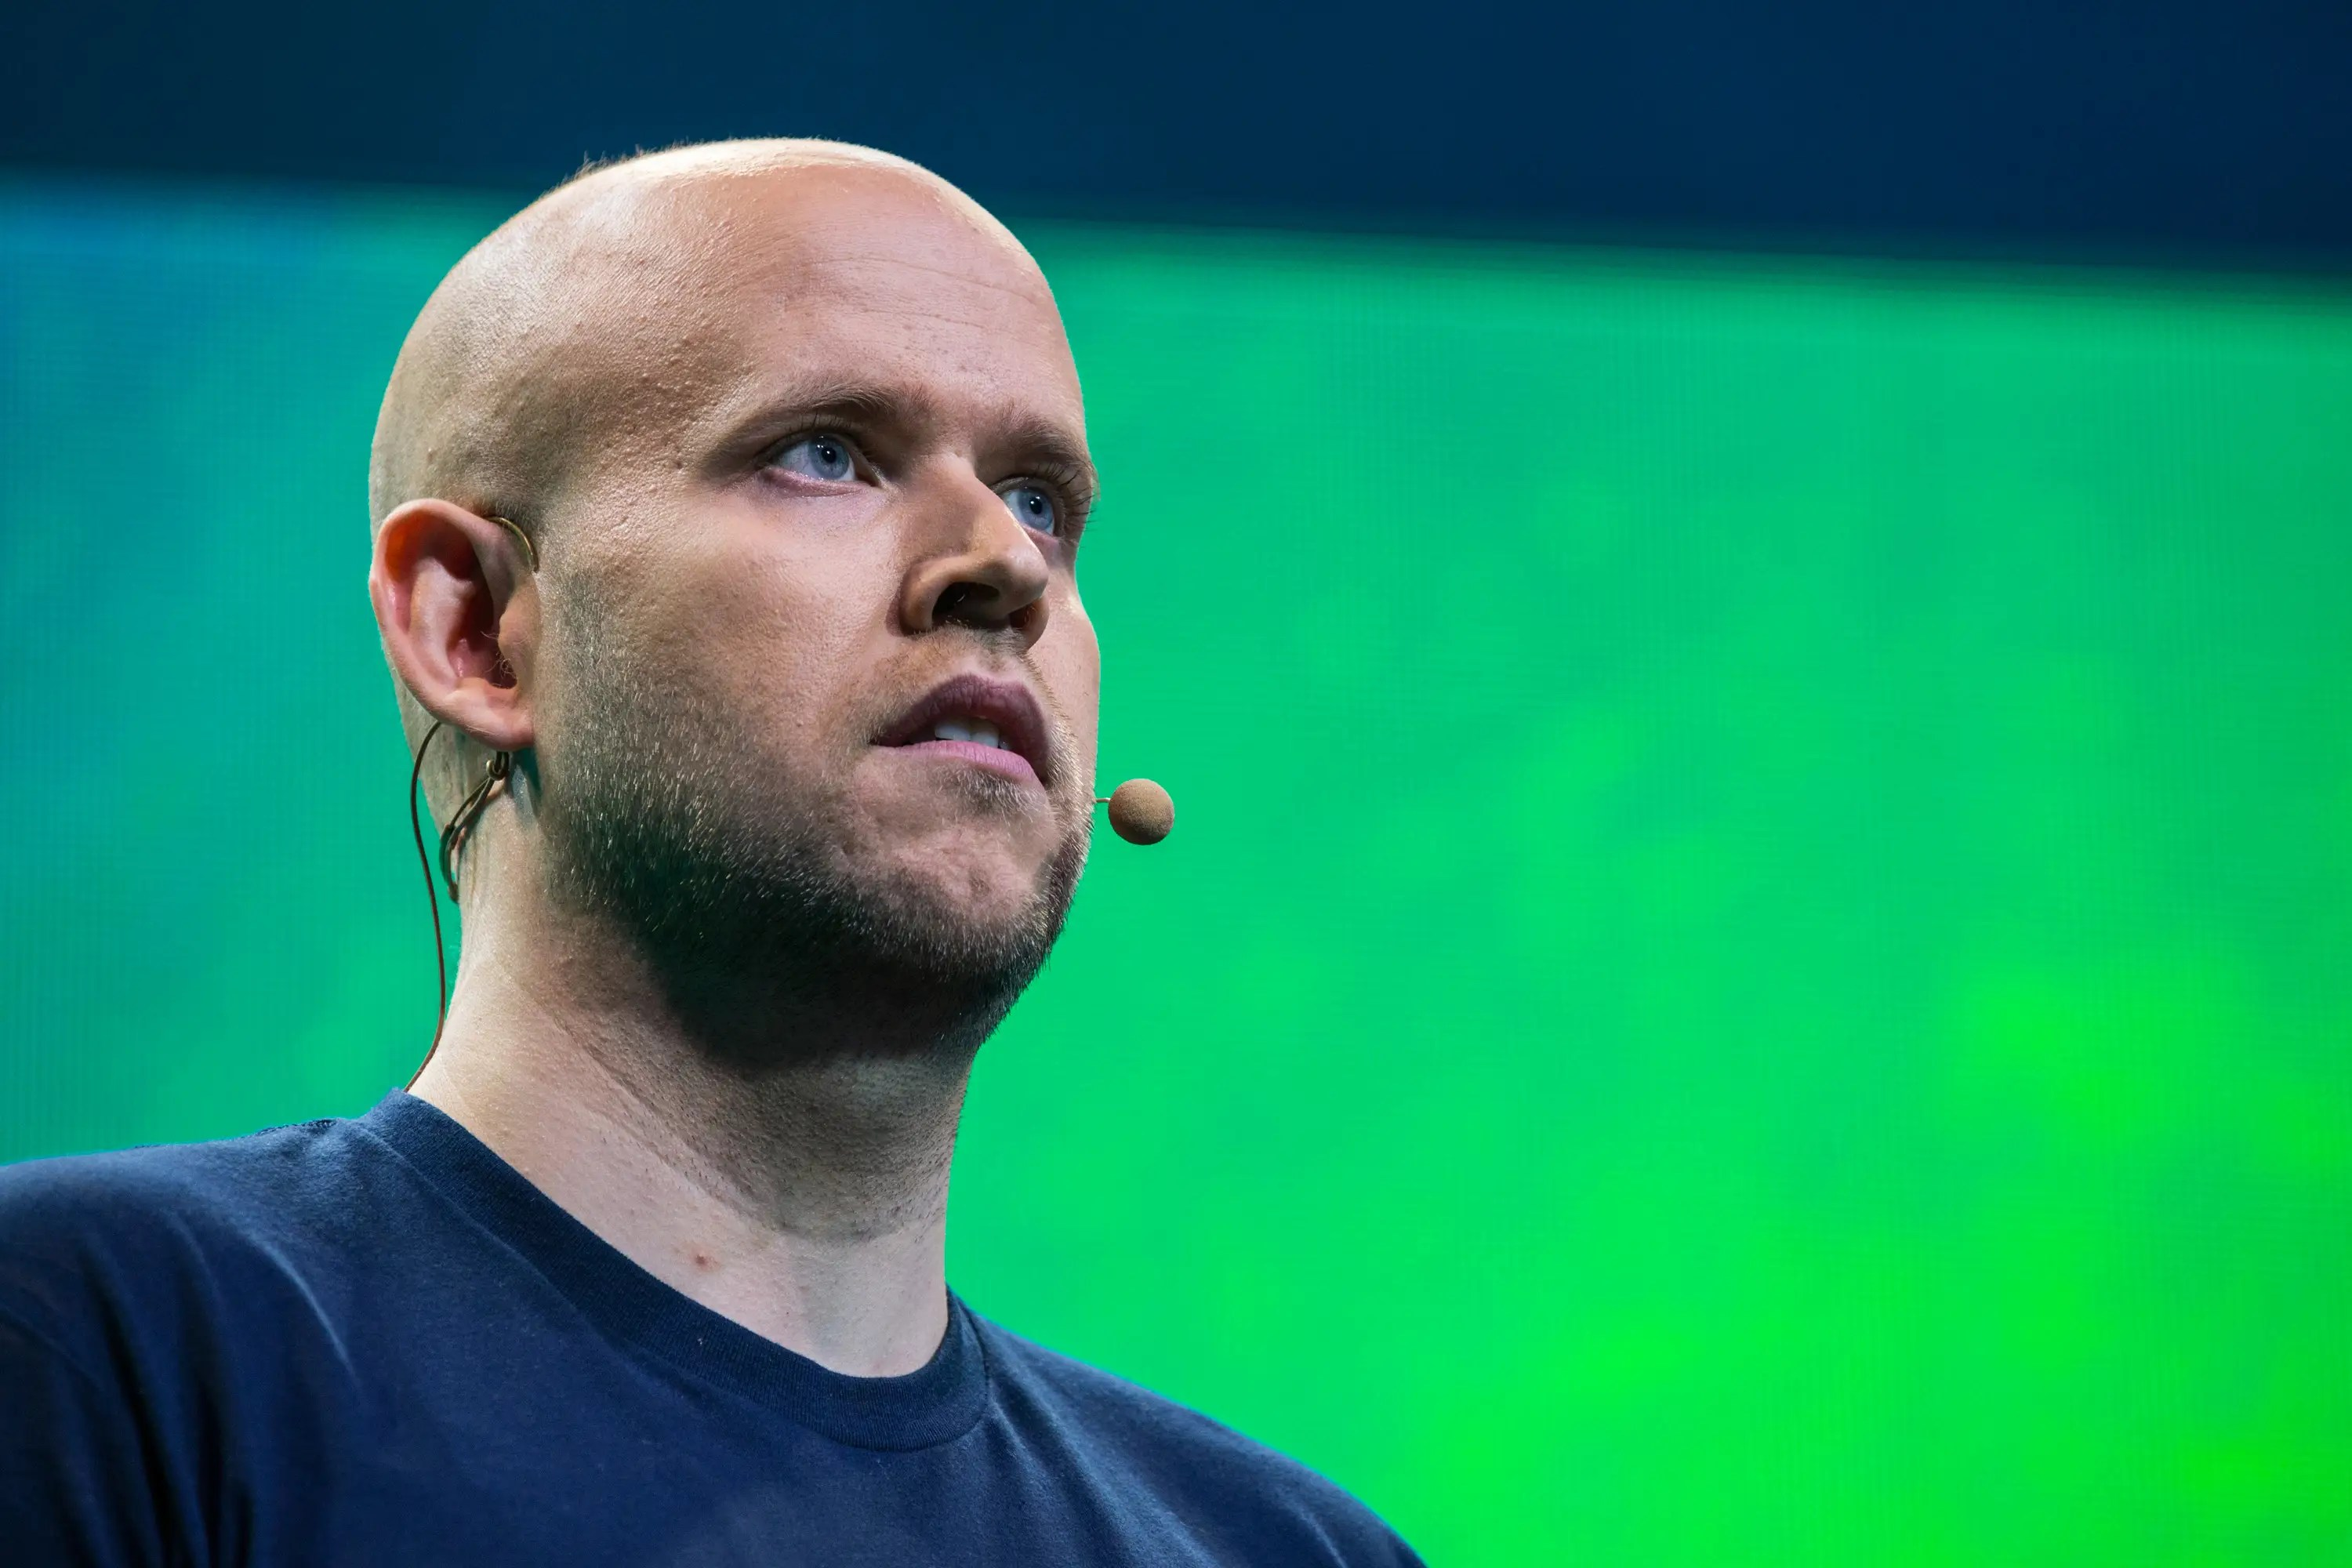 Spotify CEO Daniel Ek worried sad